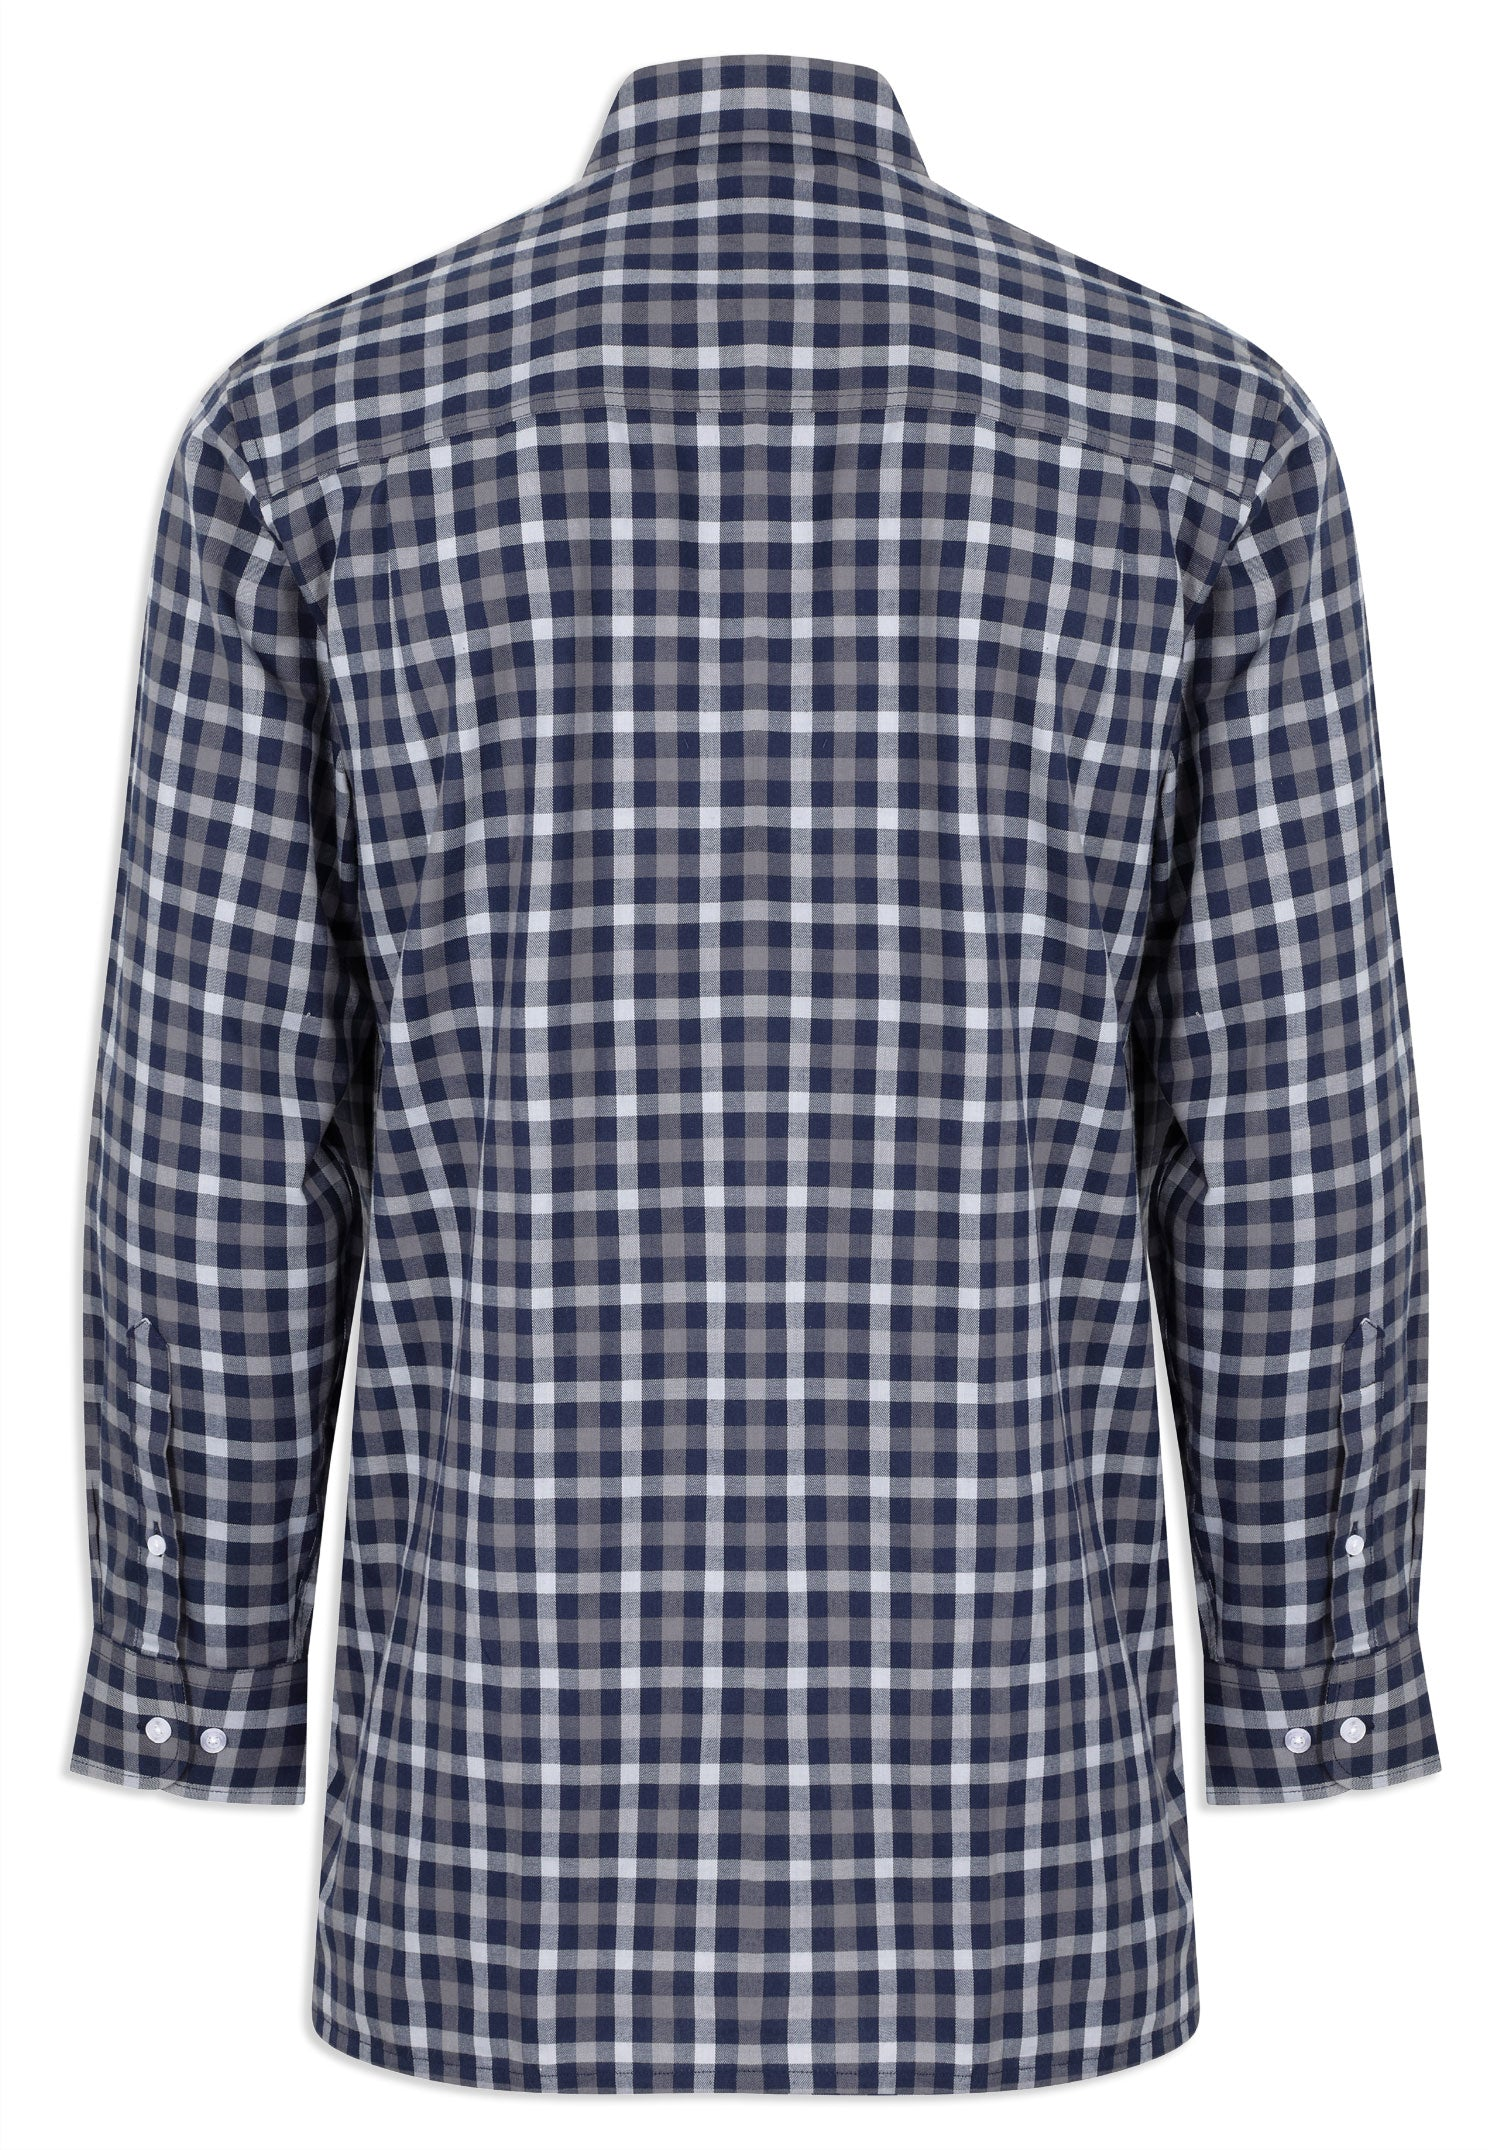 Back View Champion Southwold Navy Check Long Sleeve Shirt